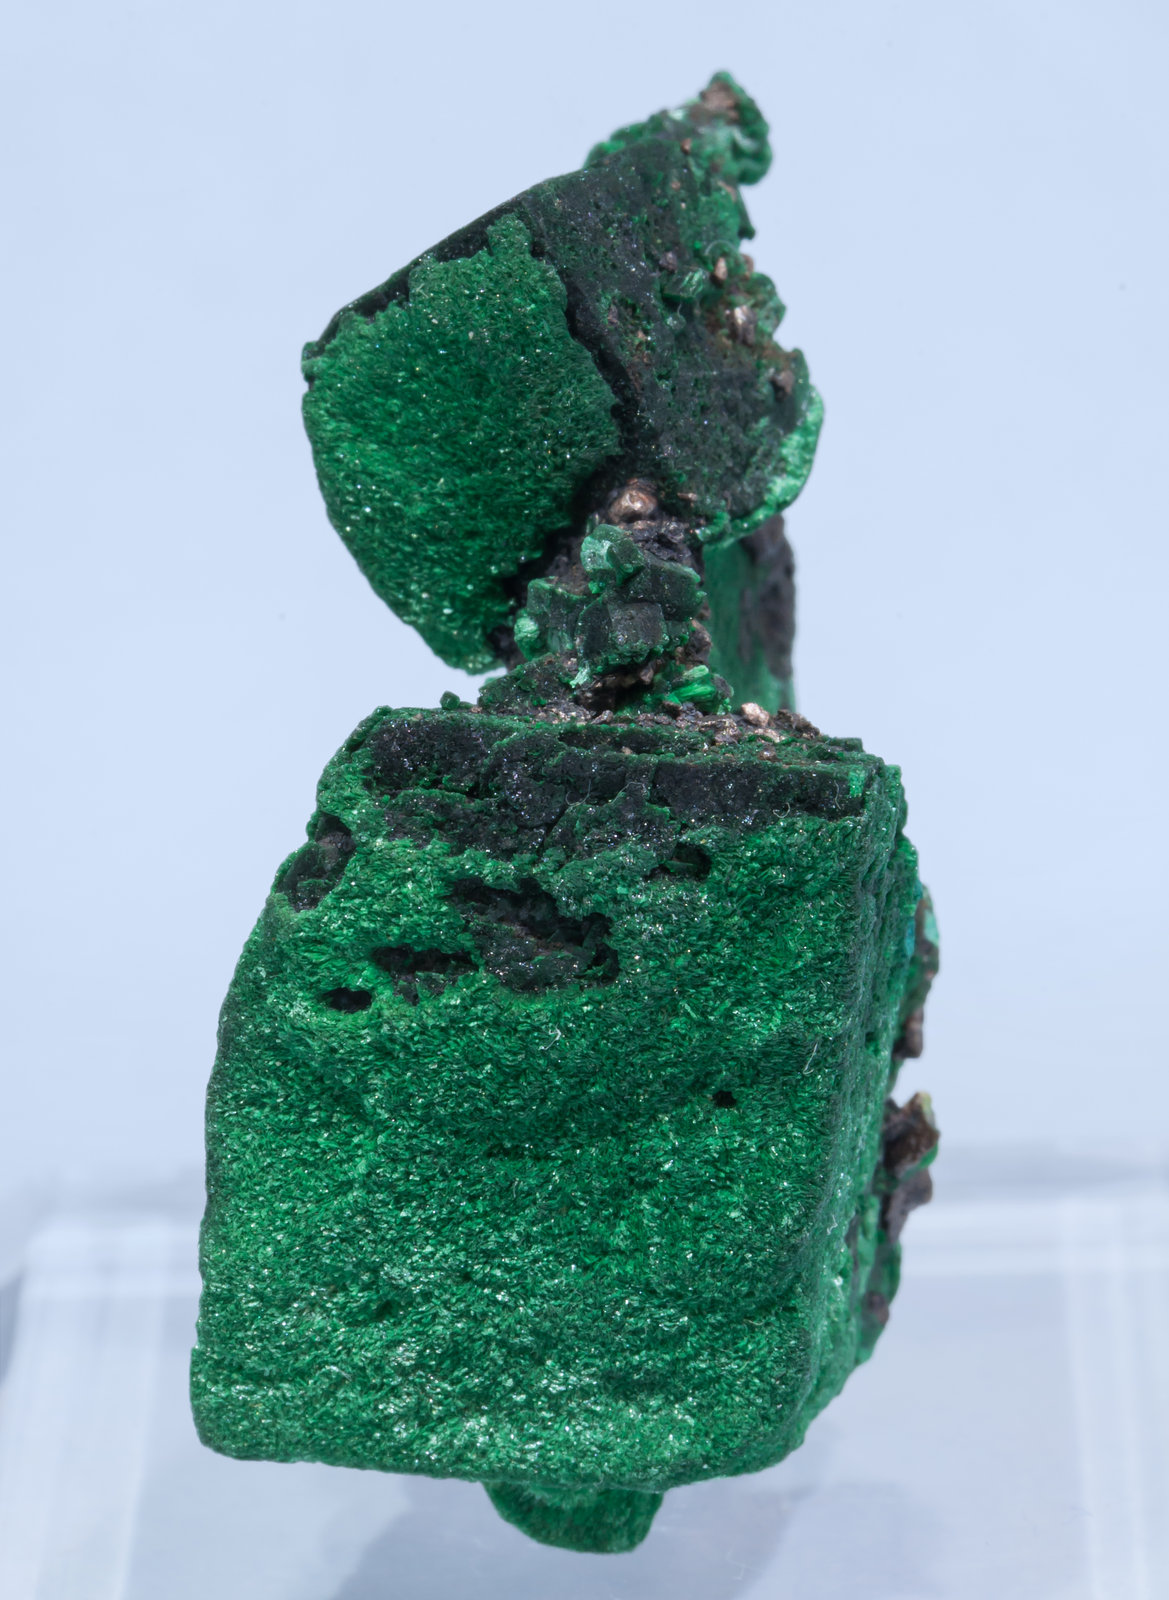 specimens/s_imagesAK8/Malachite-EY48AK8f.jpg